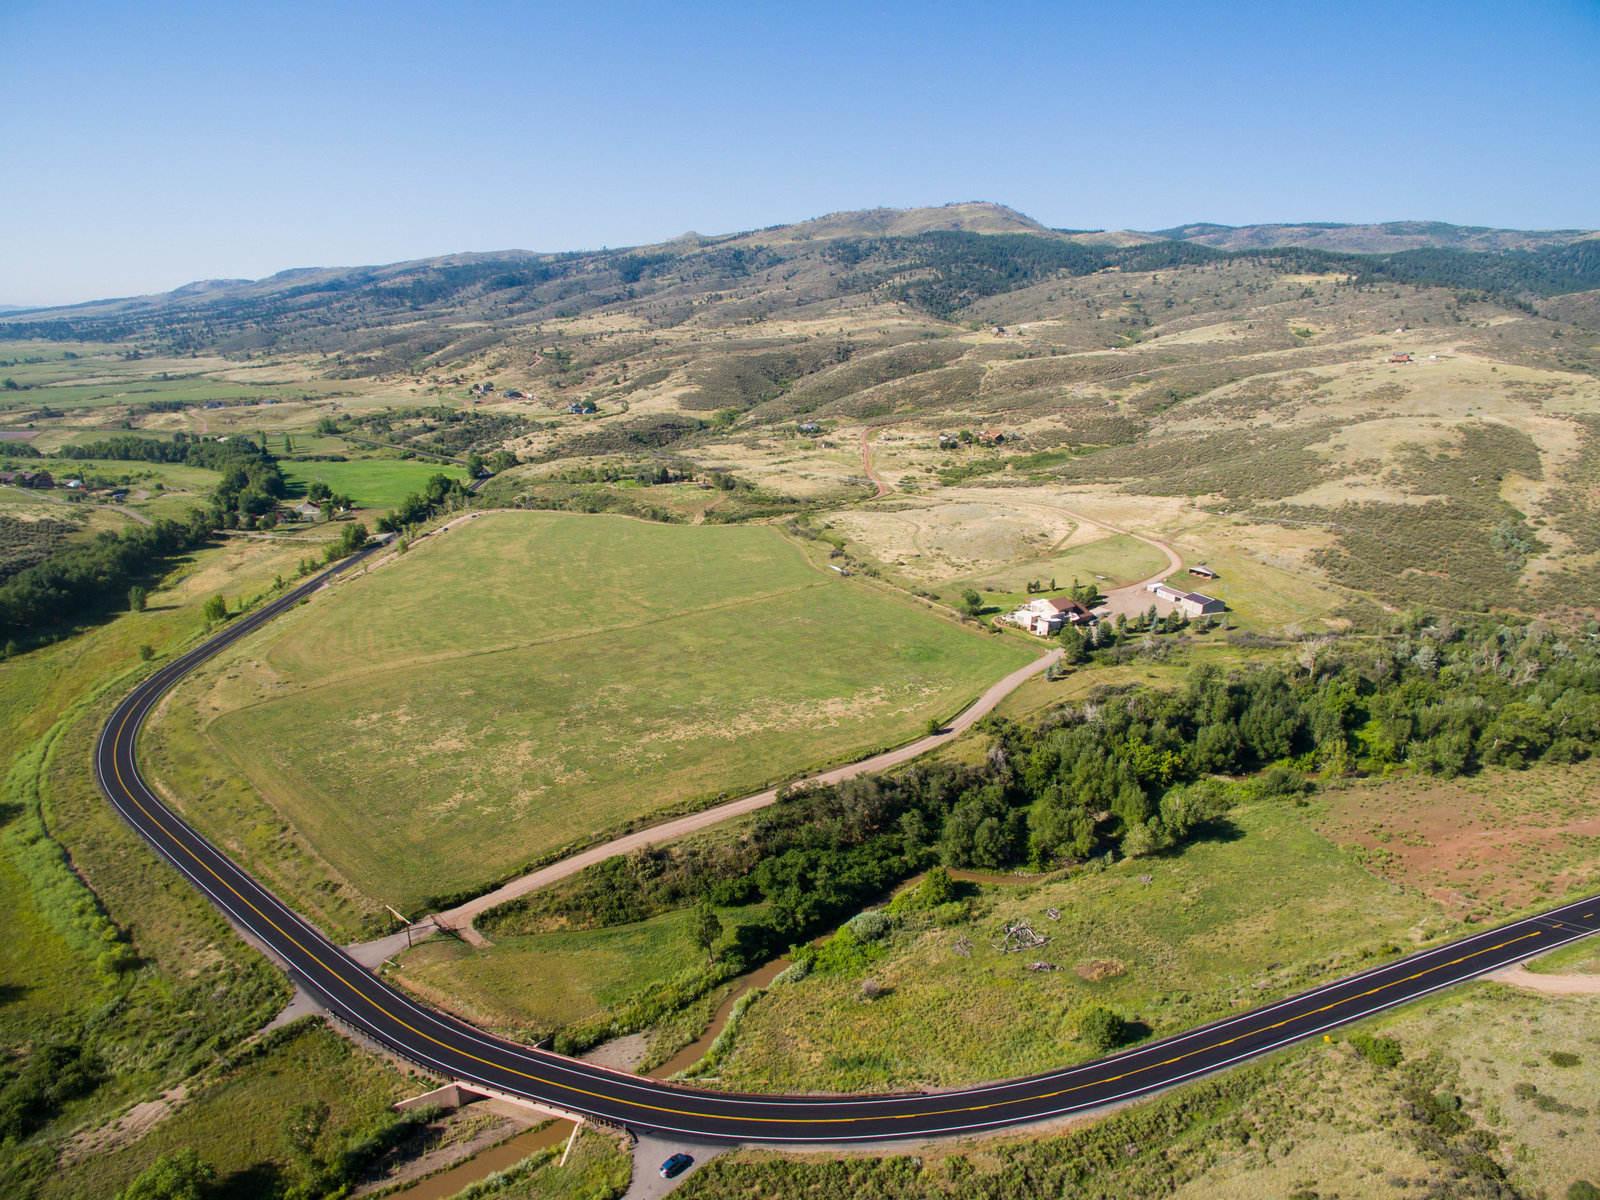 Loveland Colorado Road Construction Aerial Photo